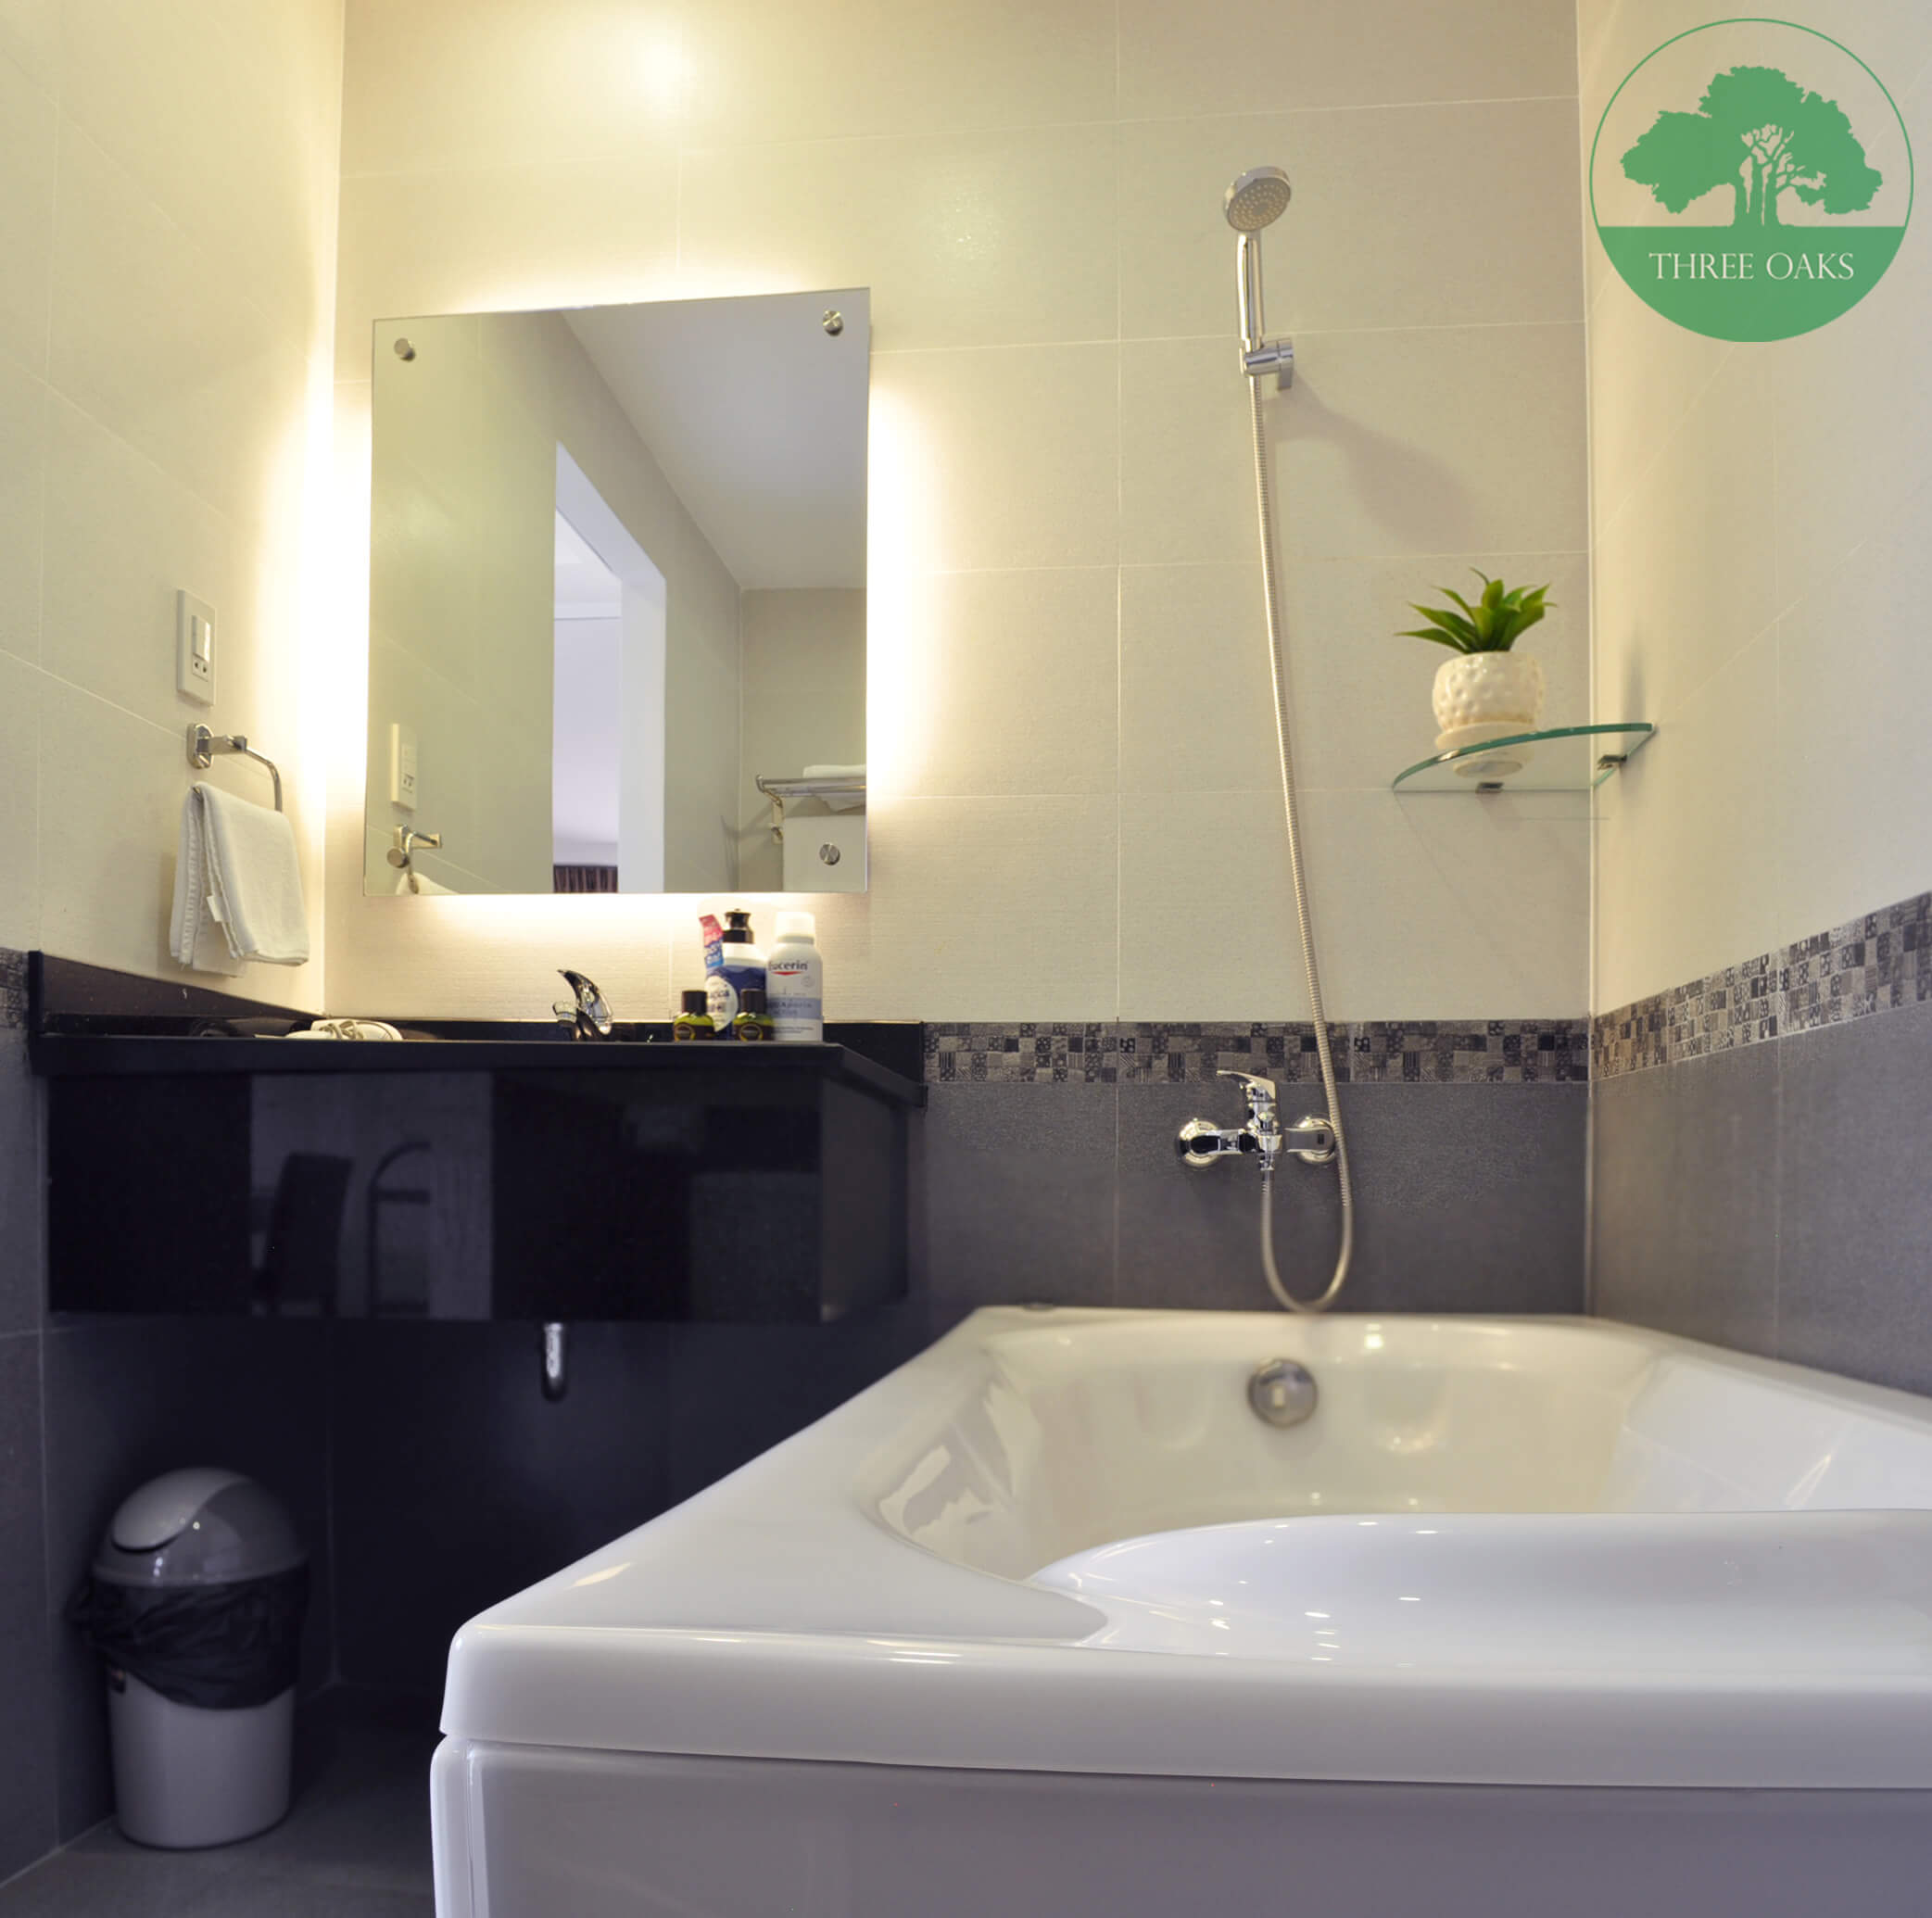 serviced-apartment-in-hcm-three-oaks-2-tybe-a-33